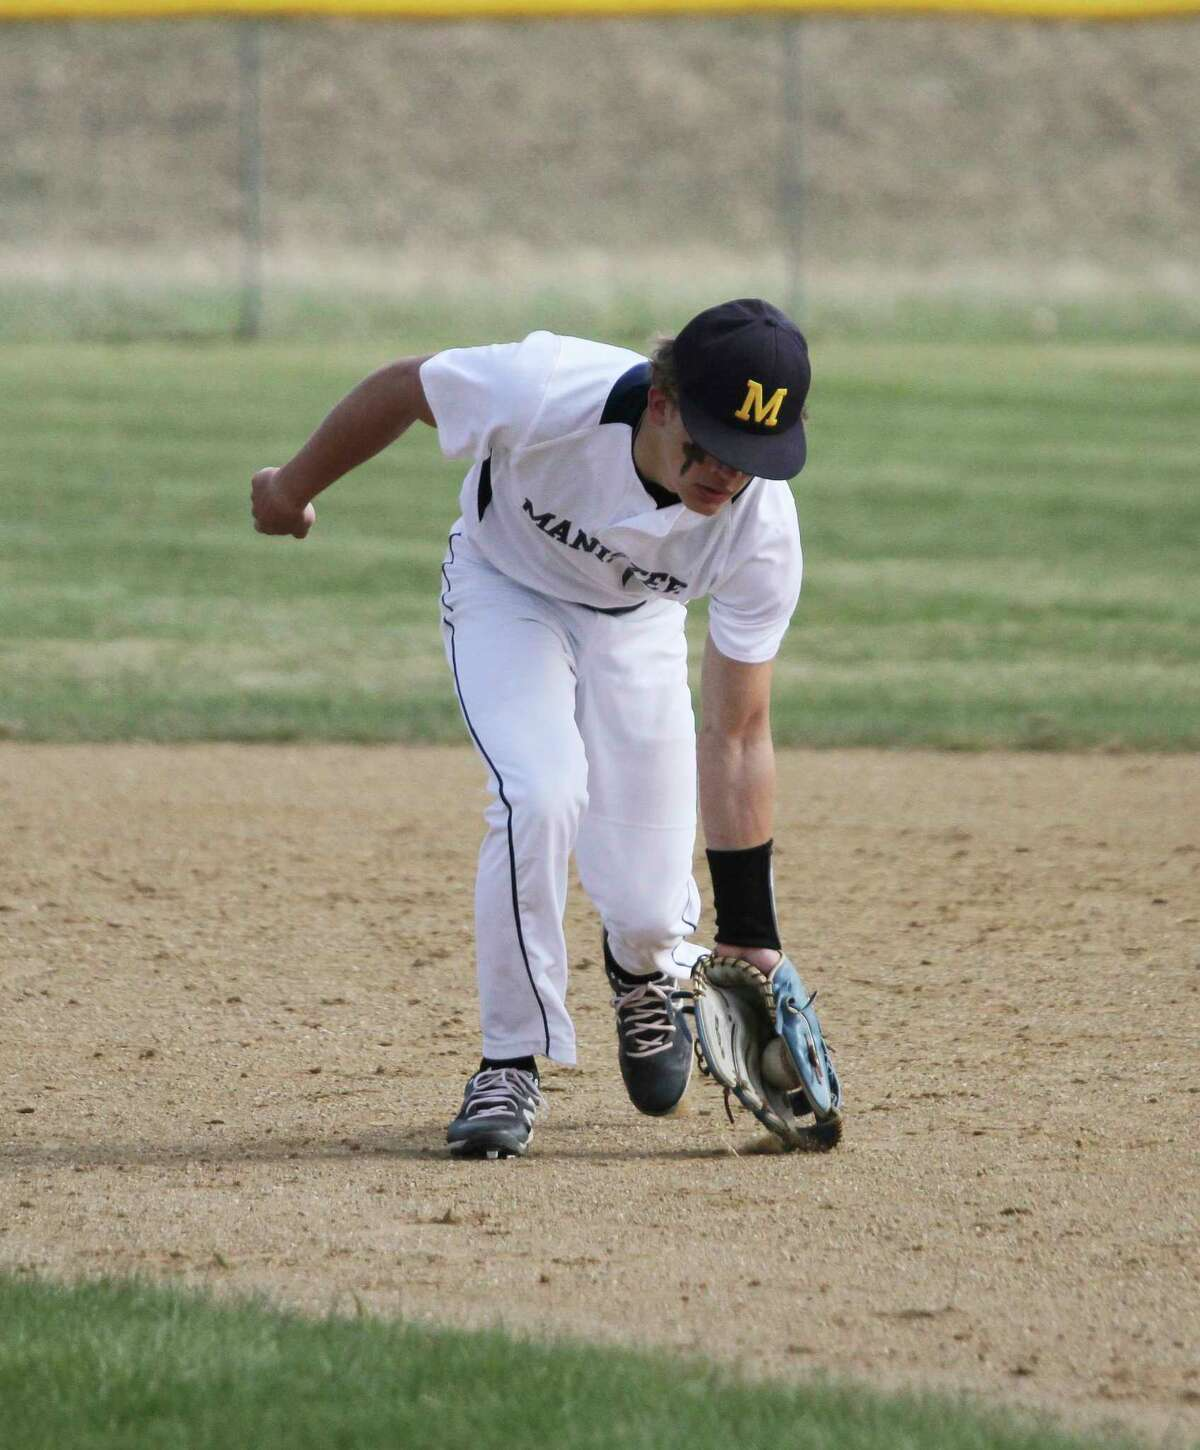 The Manistee Chippewas lost their one-game road trip to Orchard View on Thursday. (News Advocate file photo)